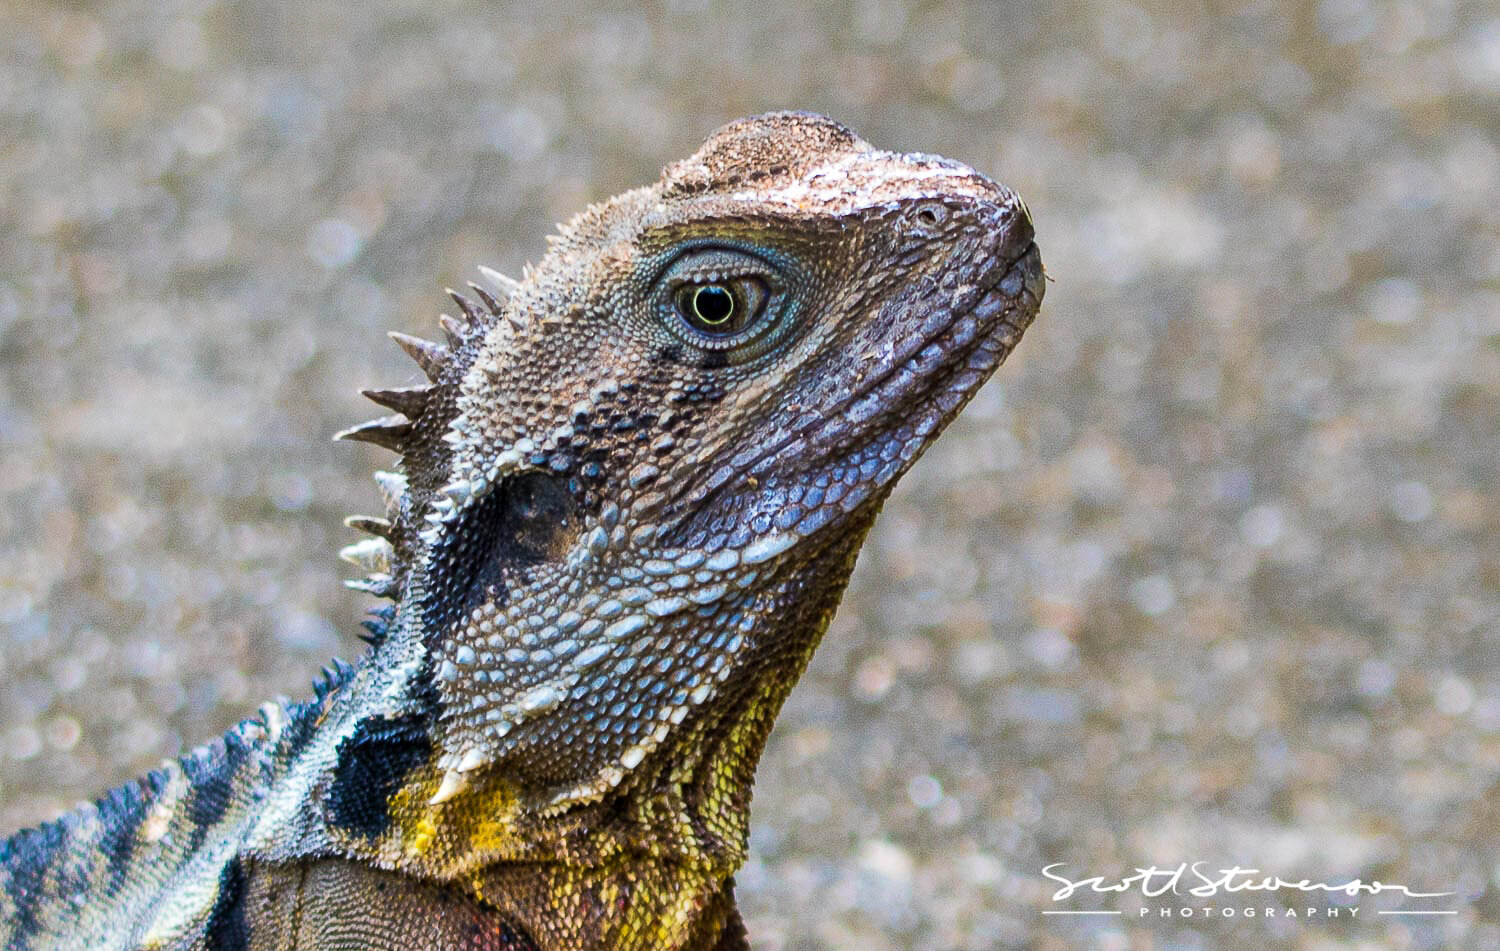 Yellow Lizard-1.jpg